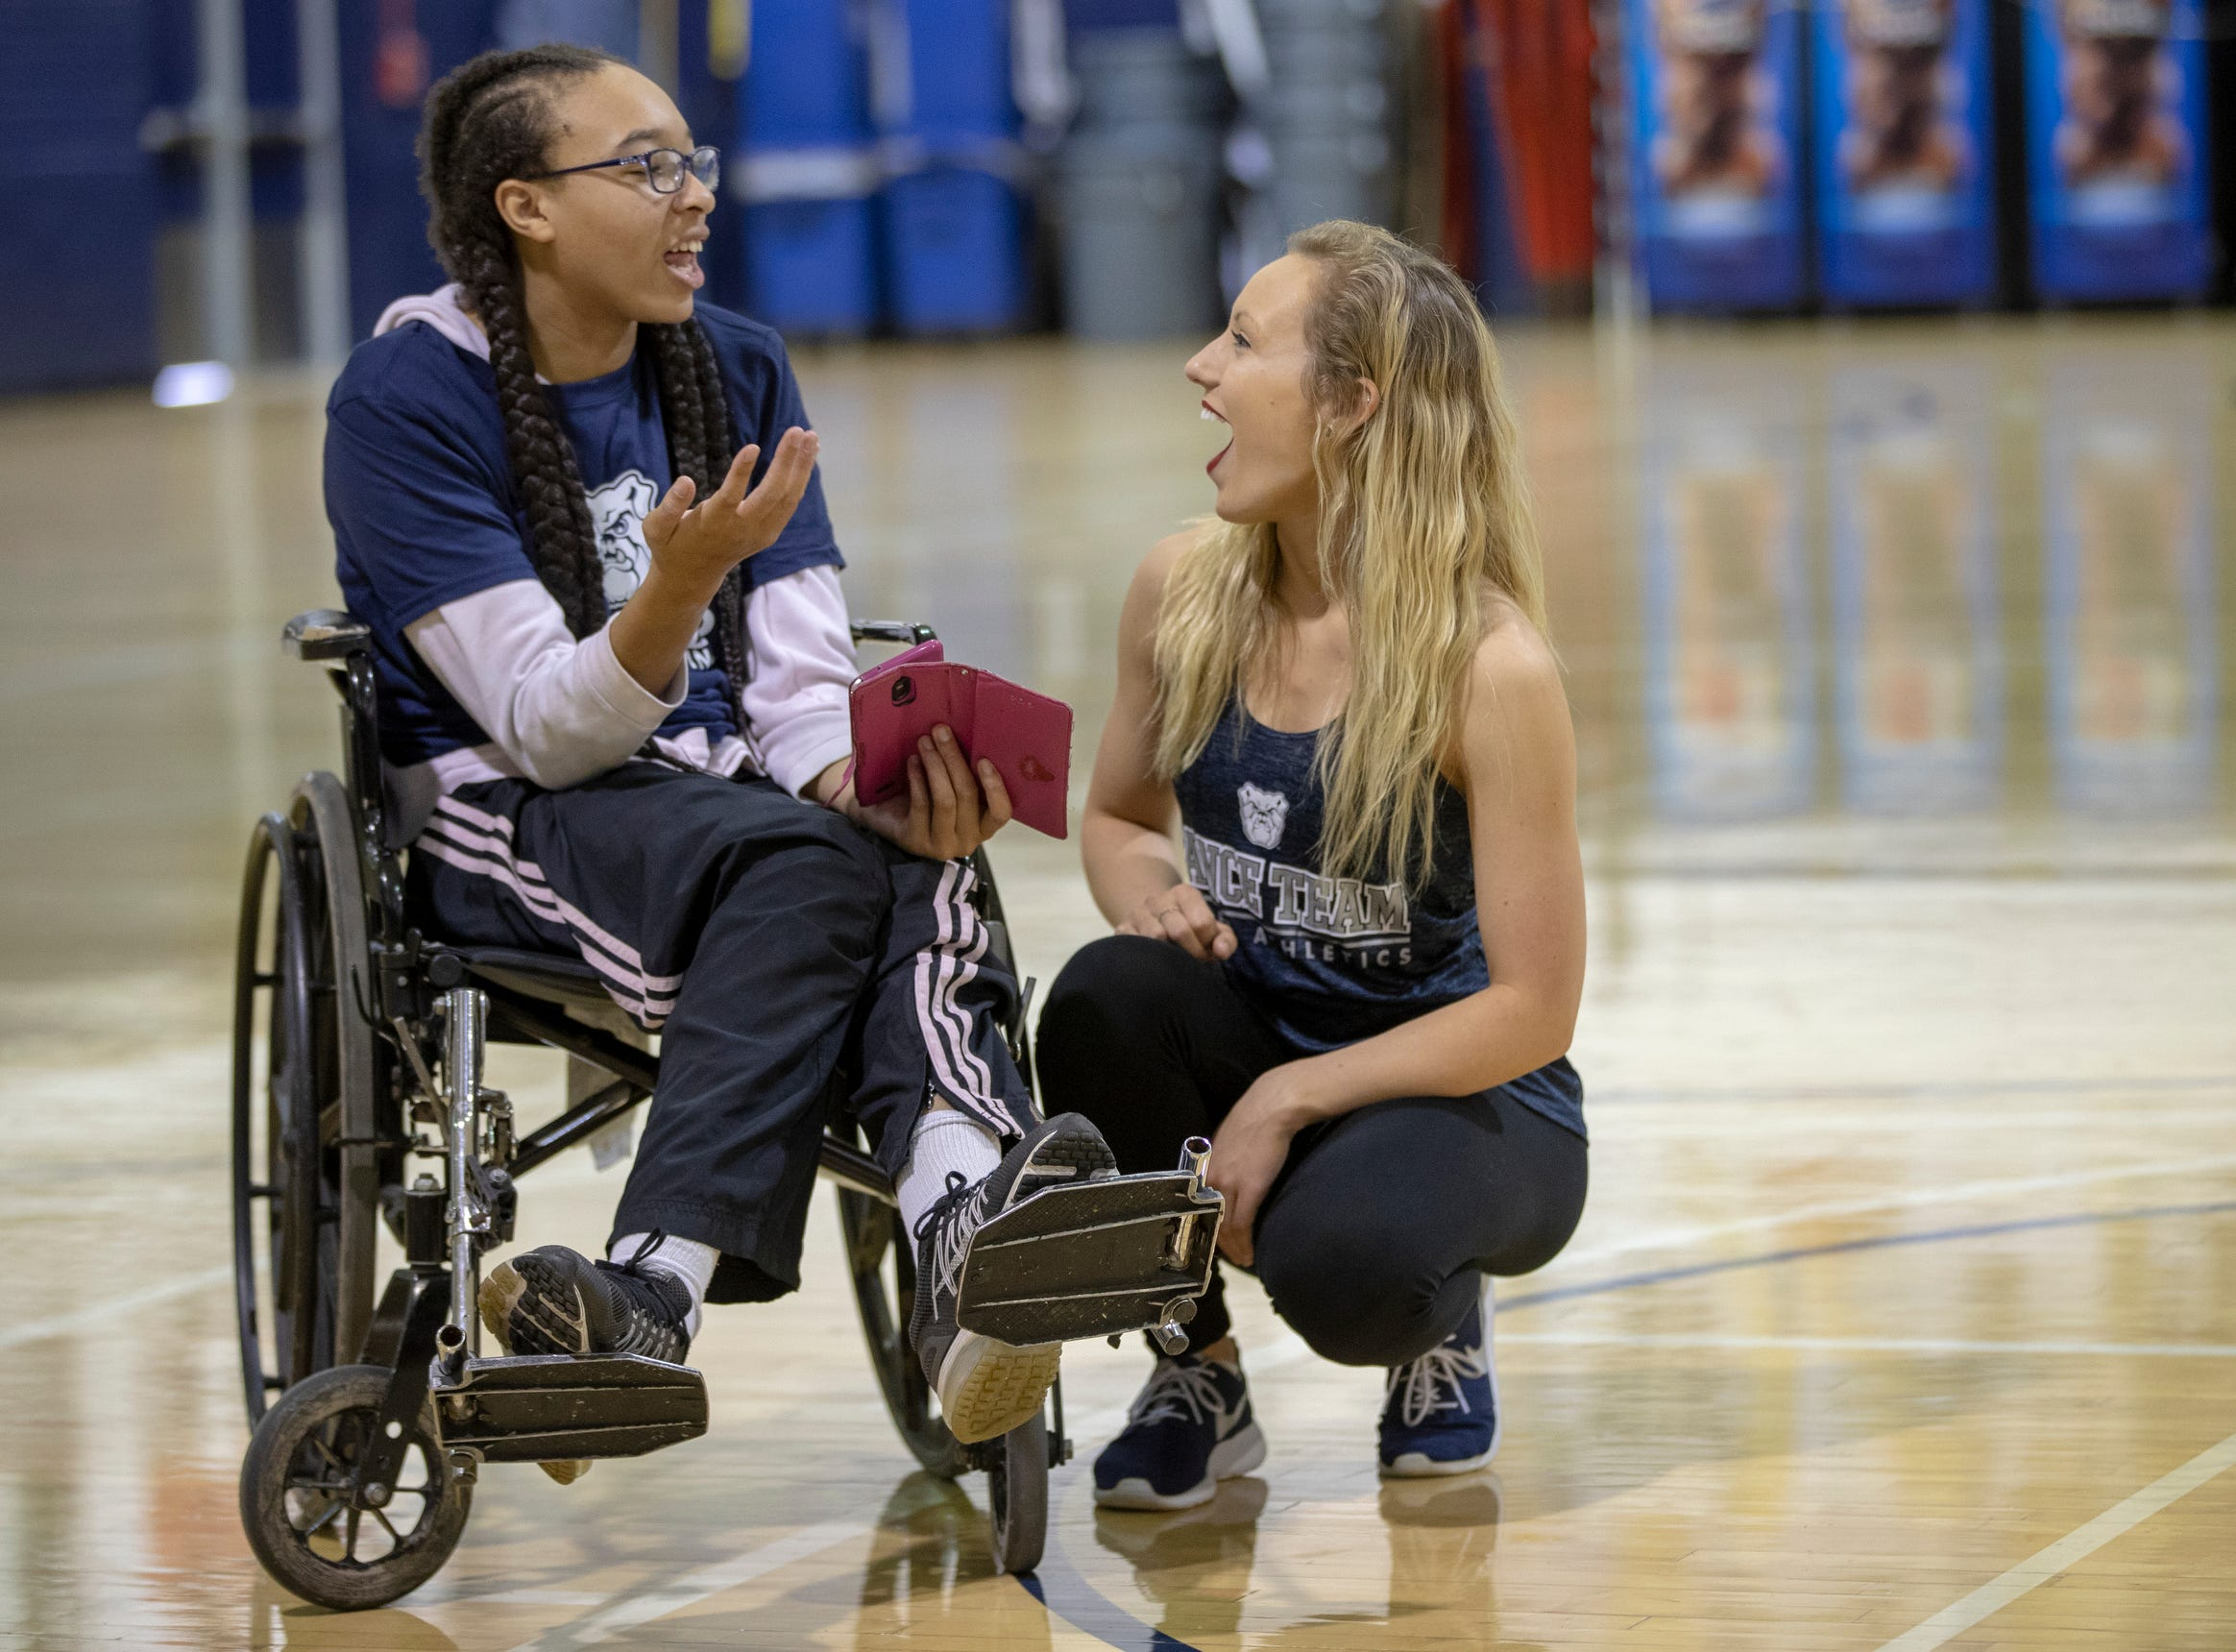 Butler, IU students team up with special needs students to put on a special halftime show